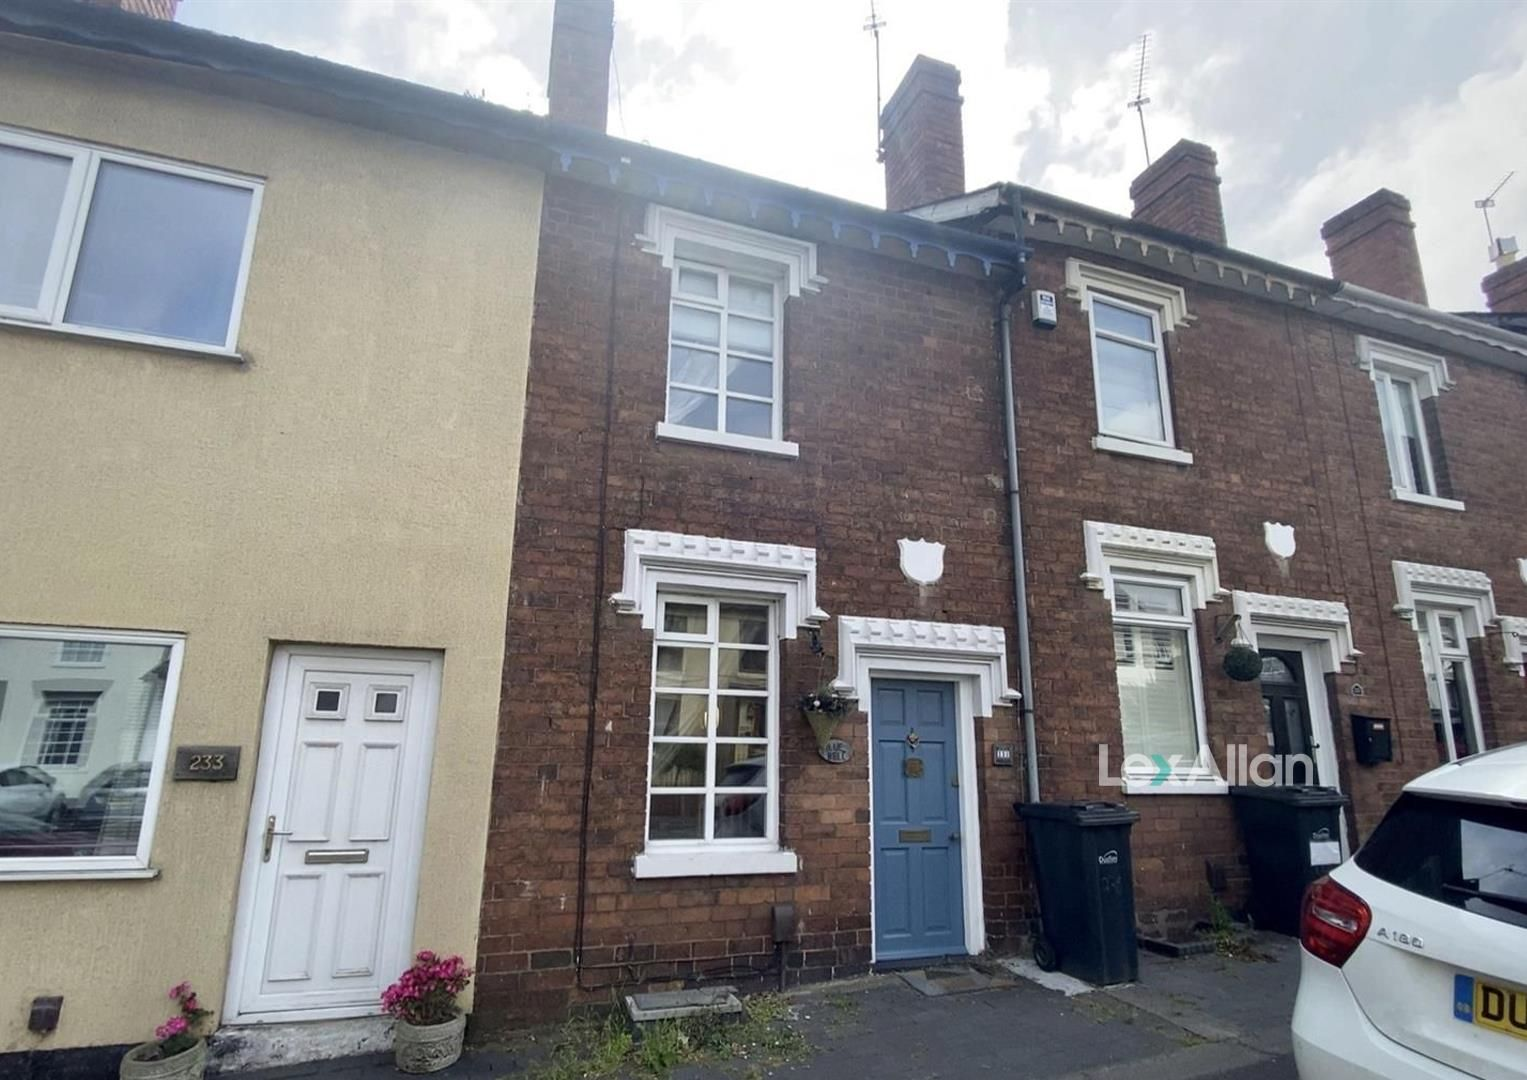 2 bed terraced for sale in Wollaston, DY8